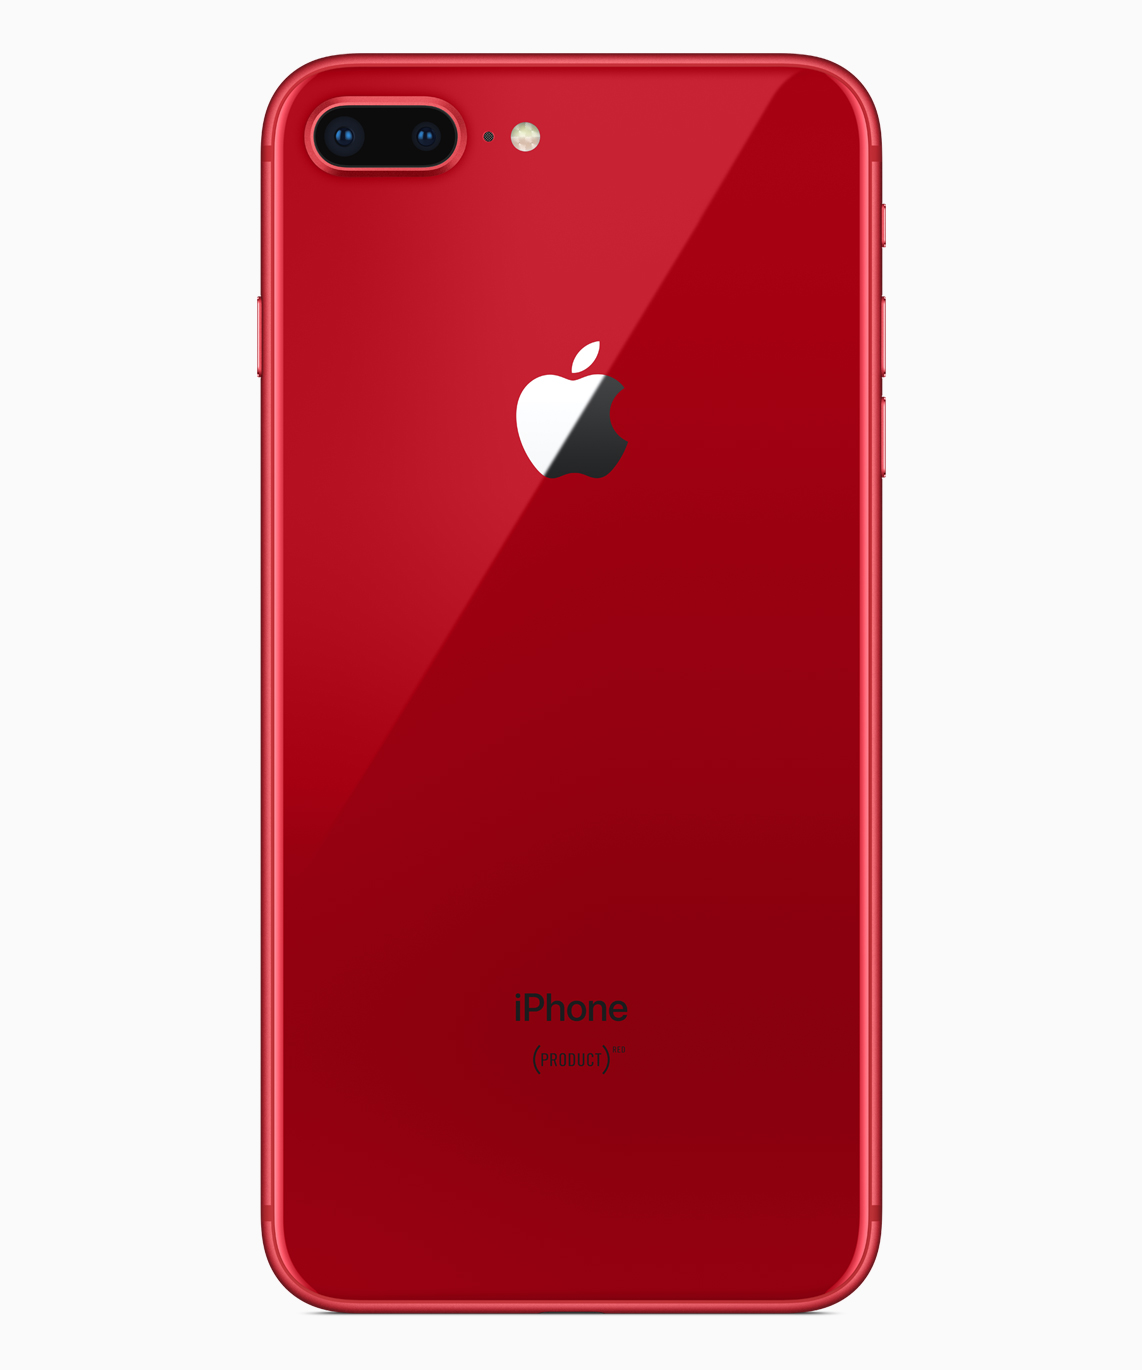 iPhone8PLUS-PRODUCT-RED_back_041018.jpg